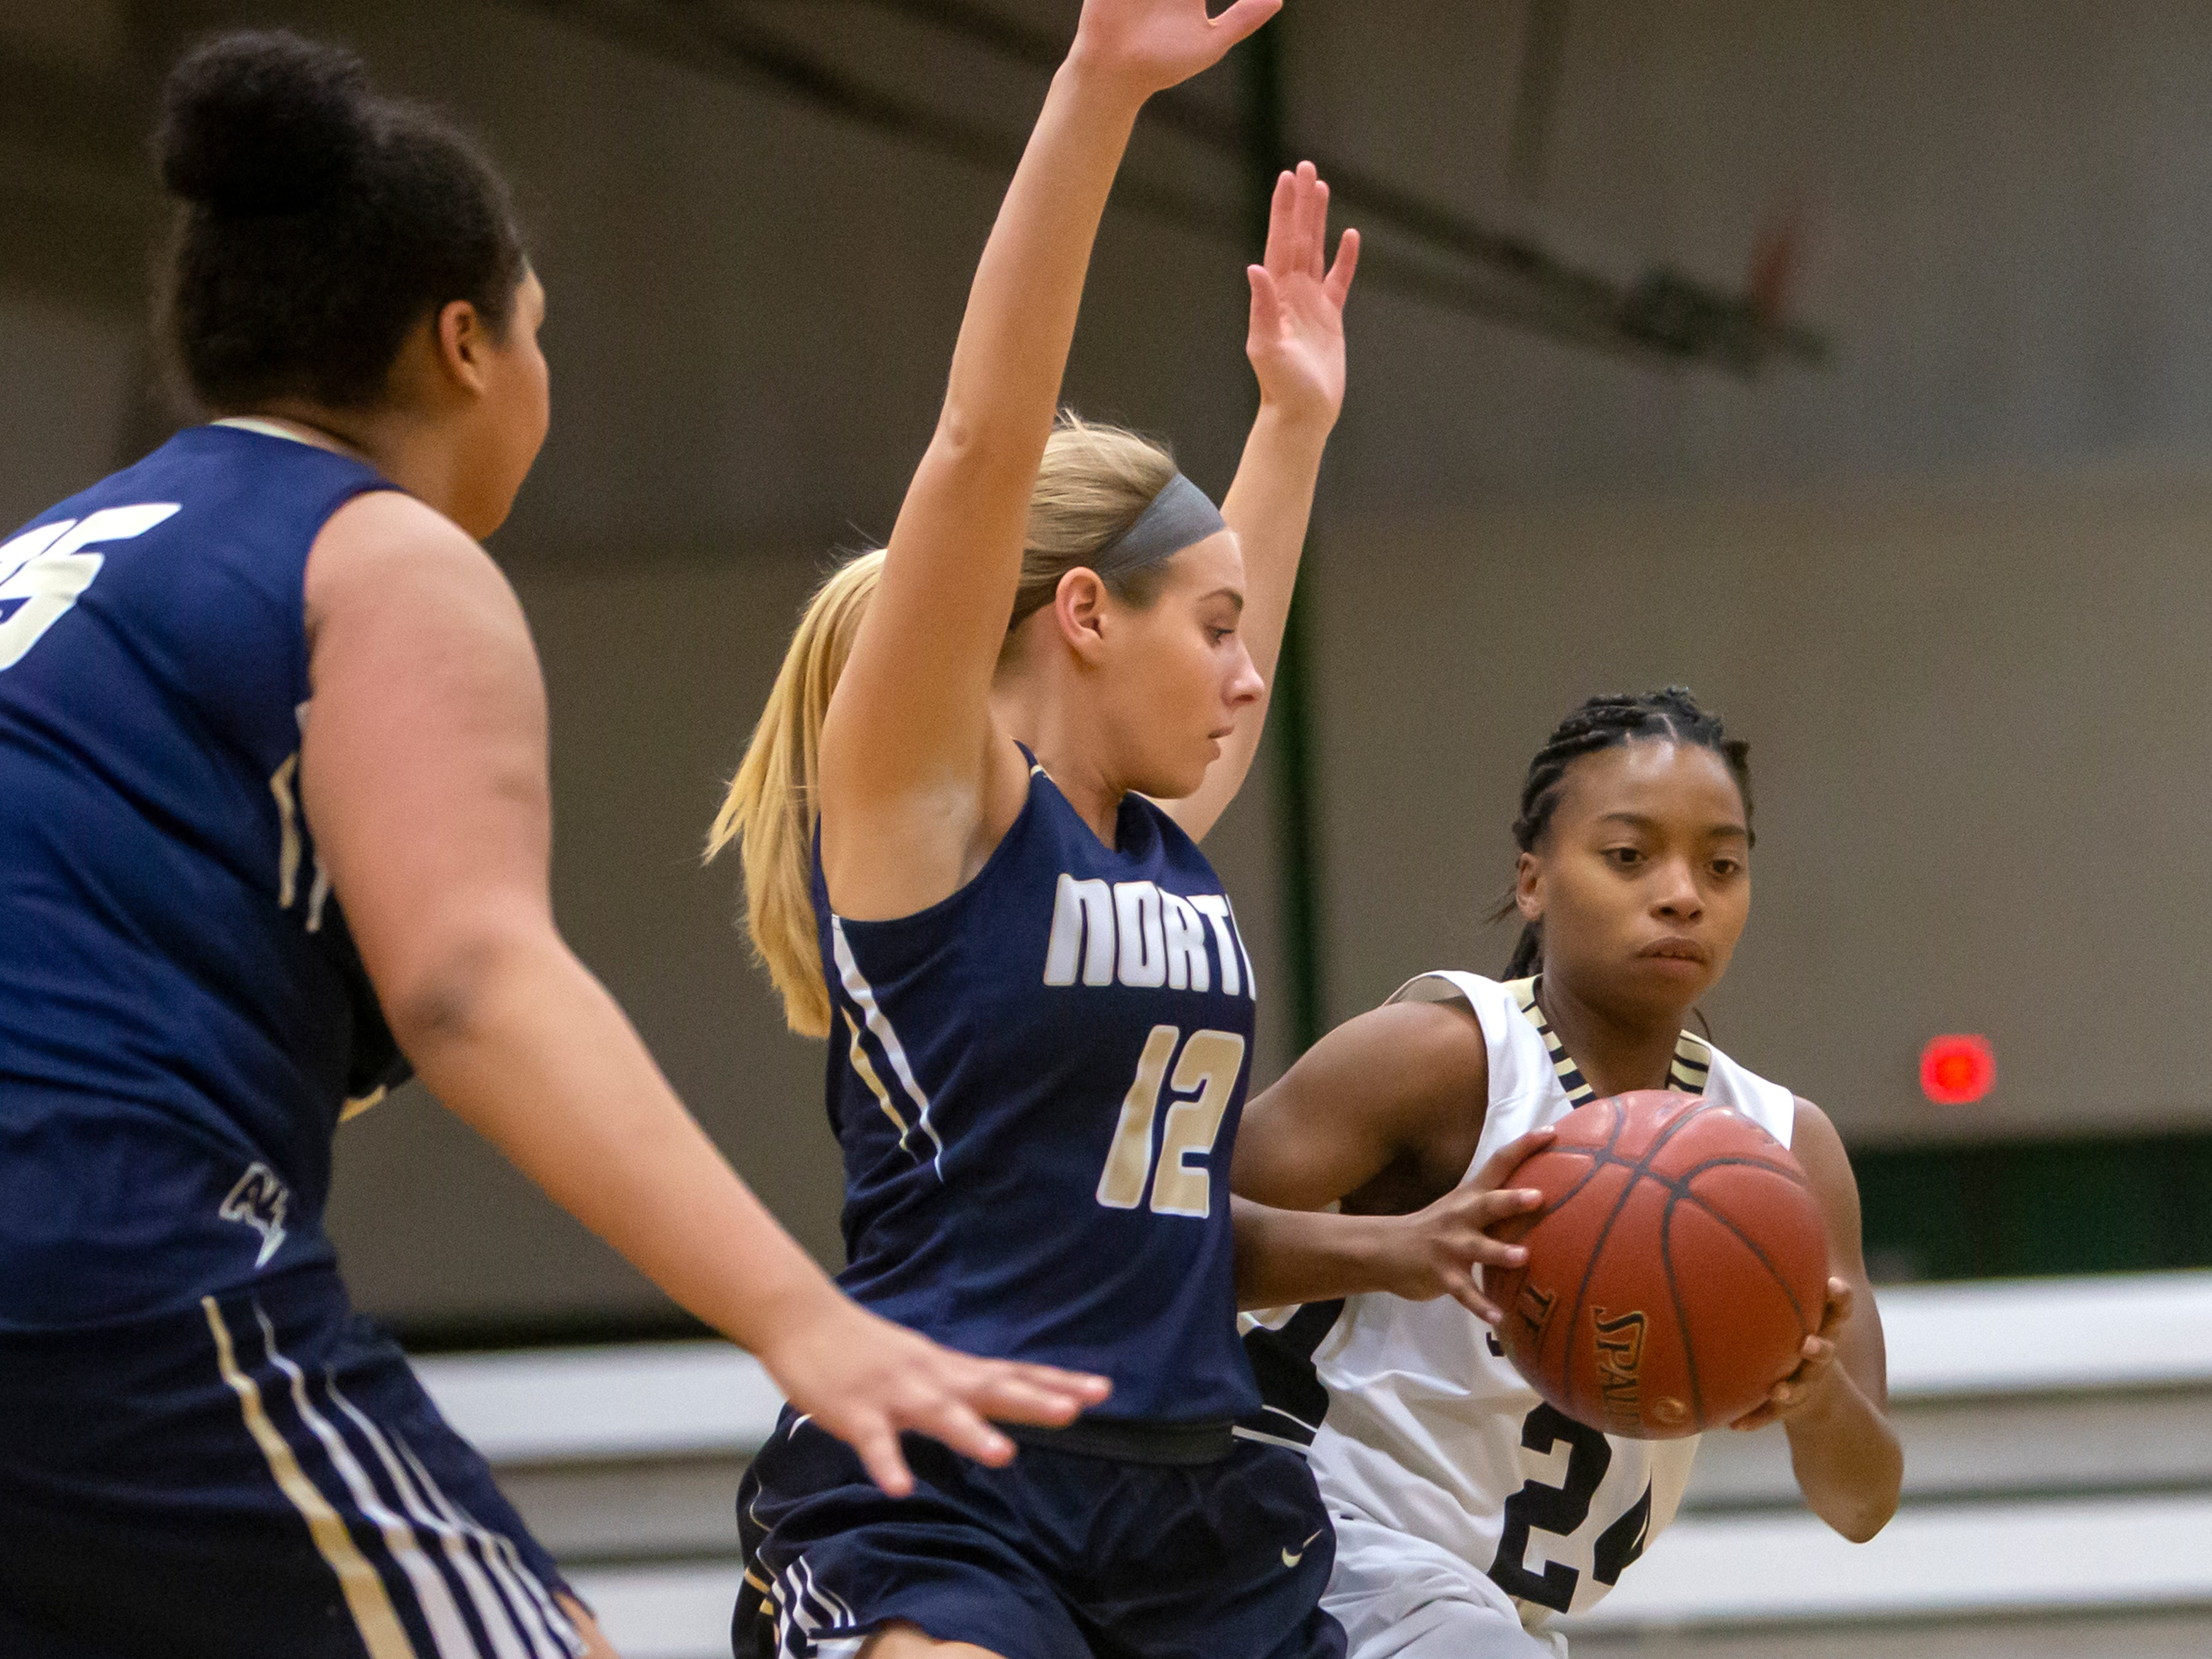 Appleton North's Teagan Prusinski attempts to stop the forward move by Oshkosh North's Nydia Griffin during the girls basketball Friday game, February 8, 2019, in Oshkosh, Wis., at Oshkosh North High School.